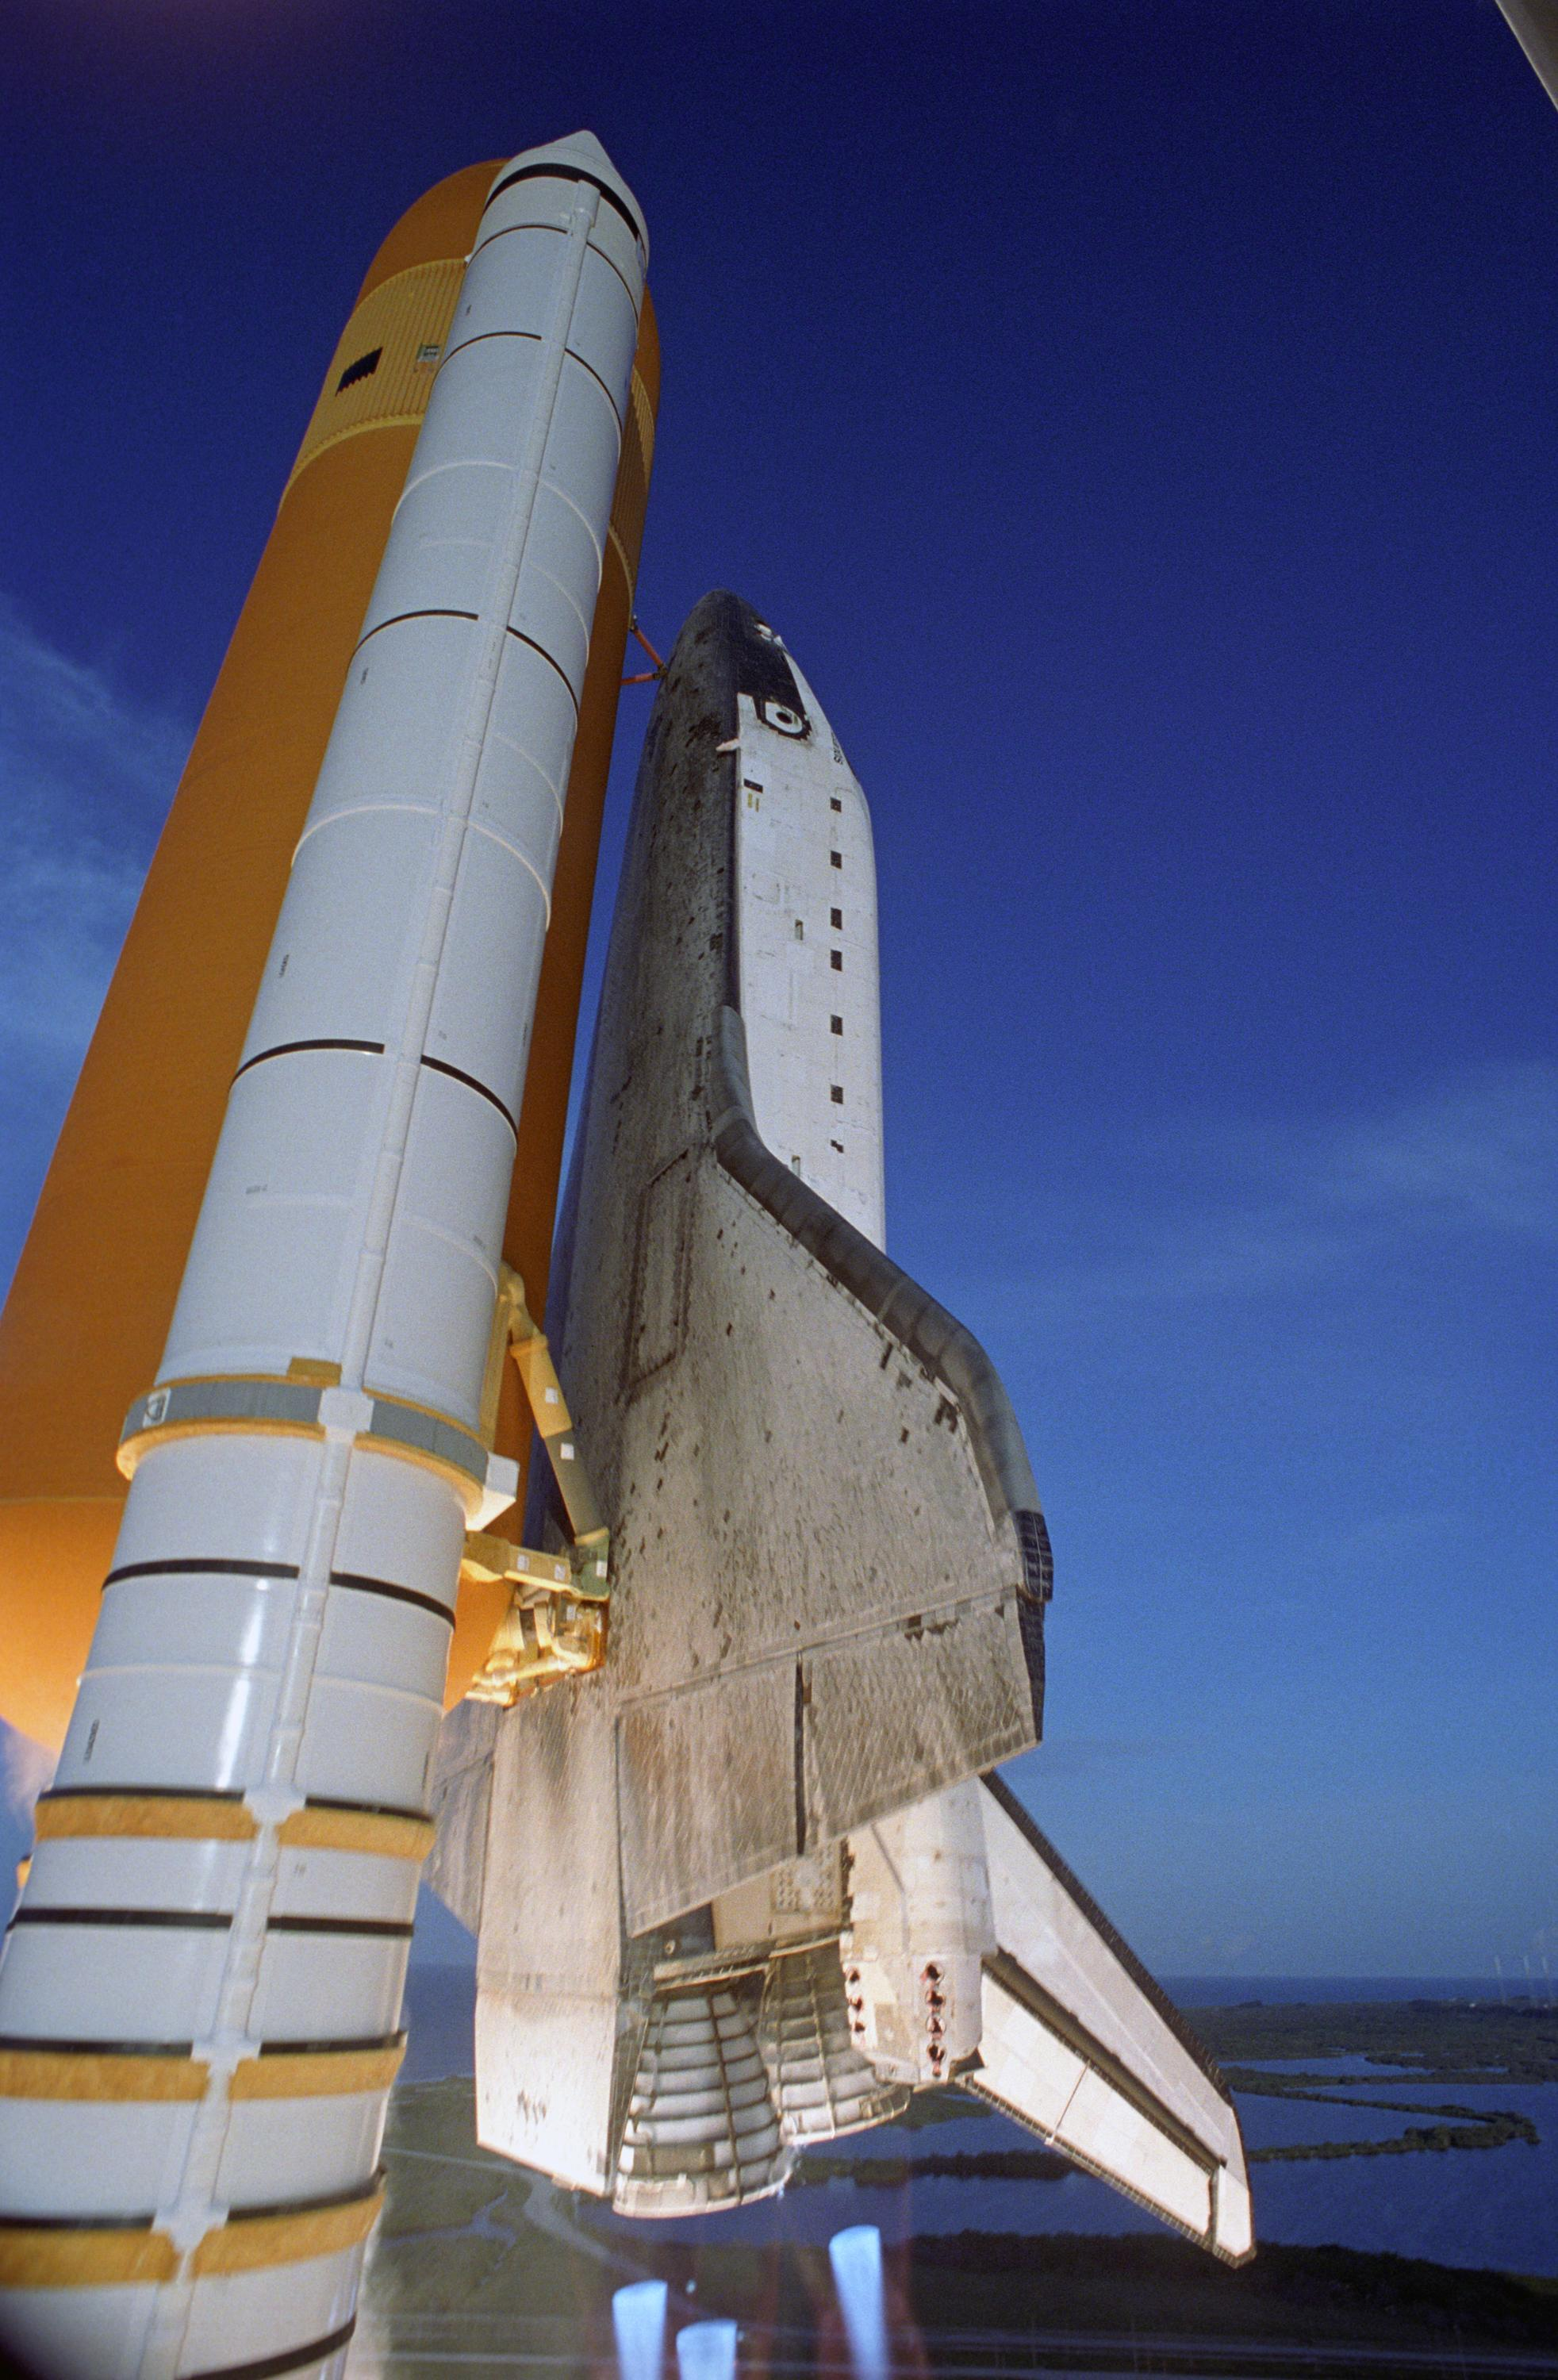 Shuttle launch controls and configurations - collectSPACE ...